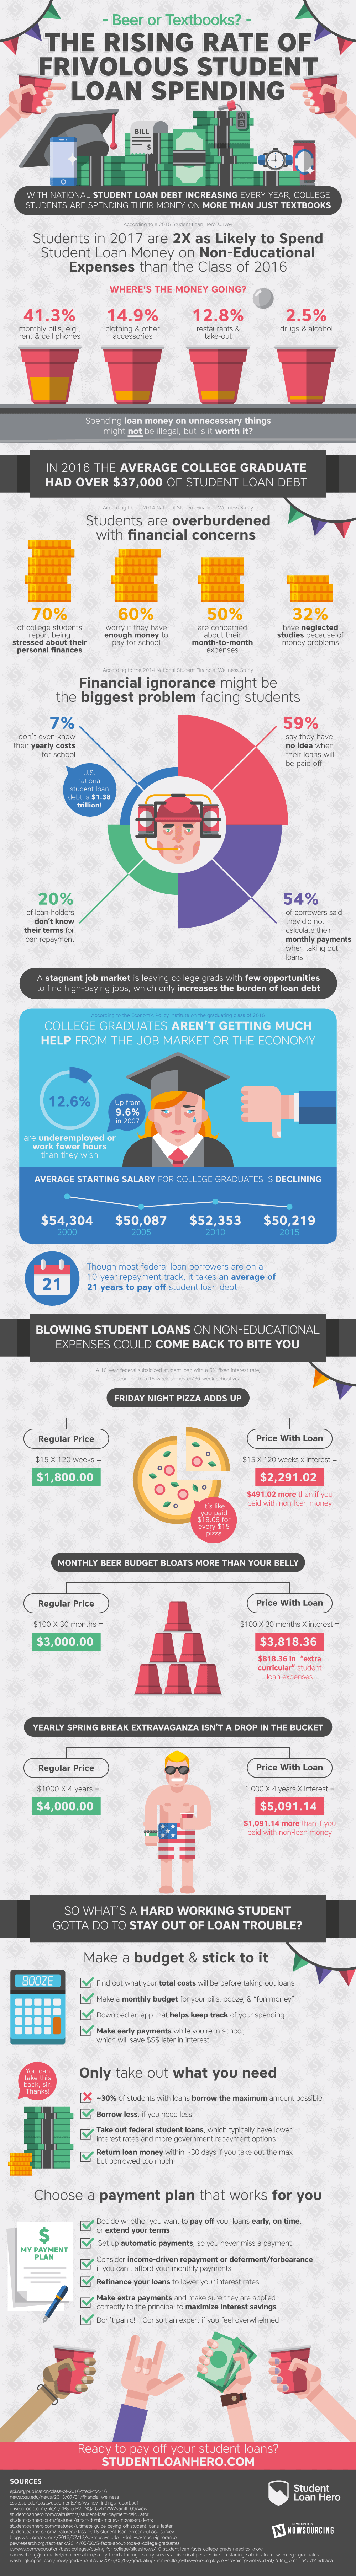 How Students Are Spending Loan Money #Infographic